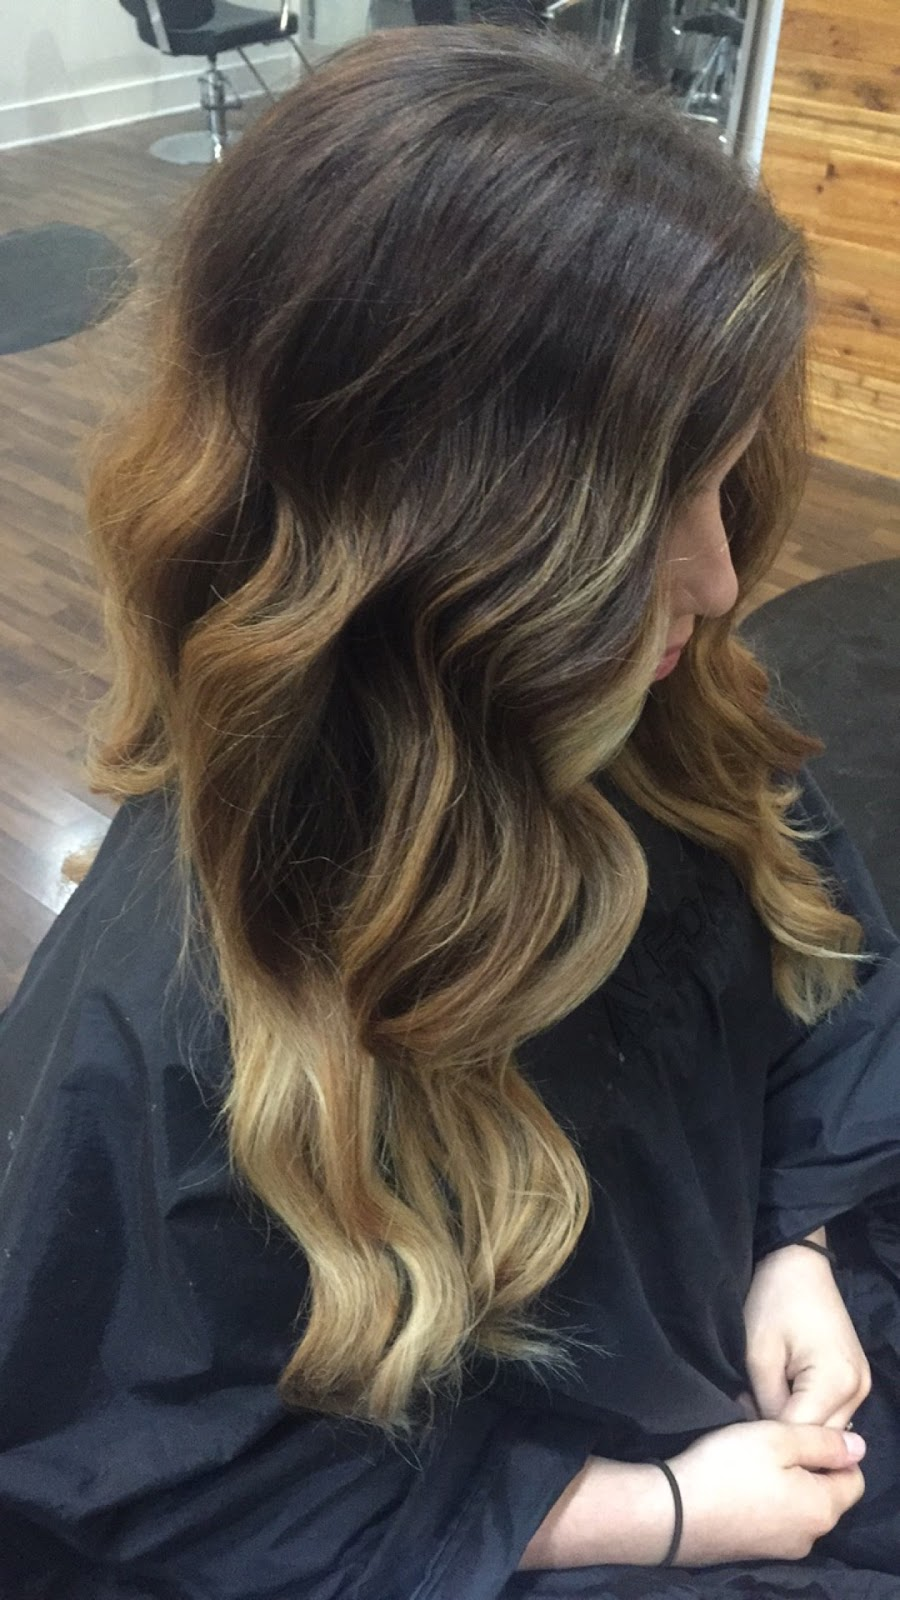 fifth and mae salons - hair care  | Photo 10 of 10 | Address: 880 Marietta Hwy Ste 600, Roswell, GA 30075, USA | Phone: (678) 381-2485